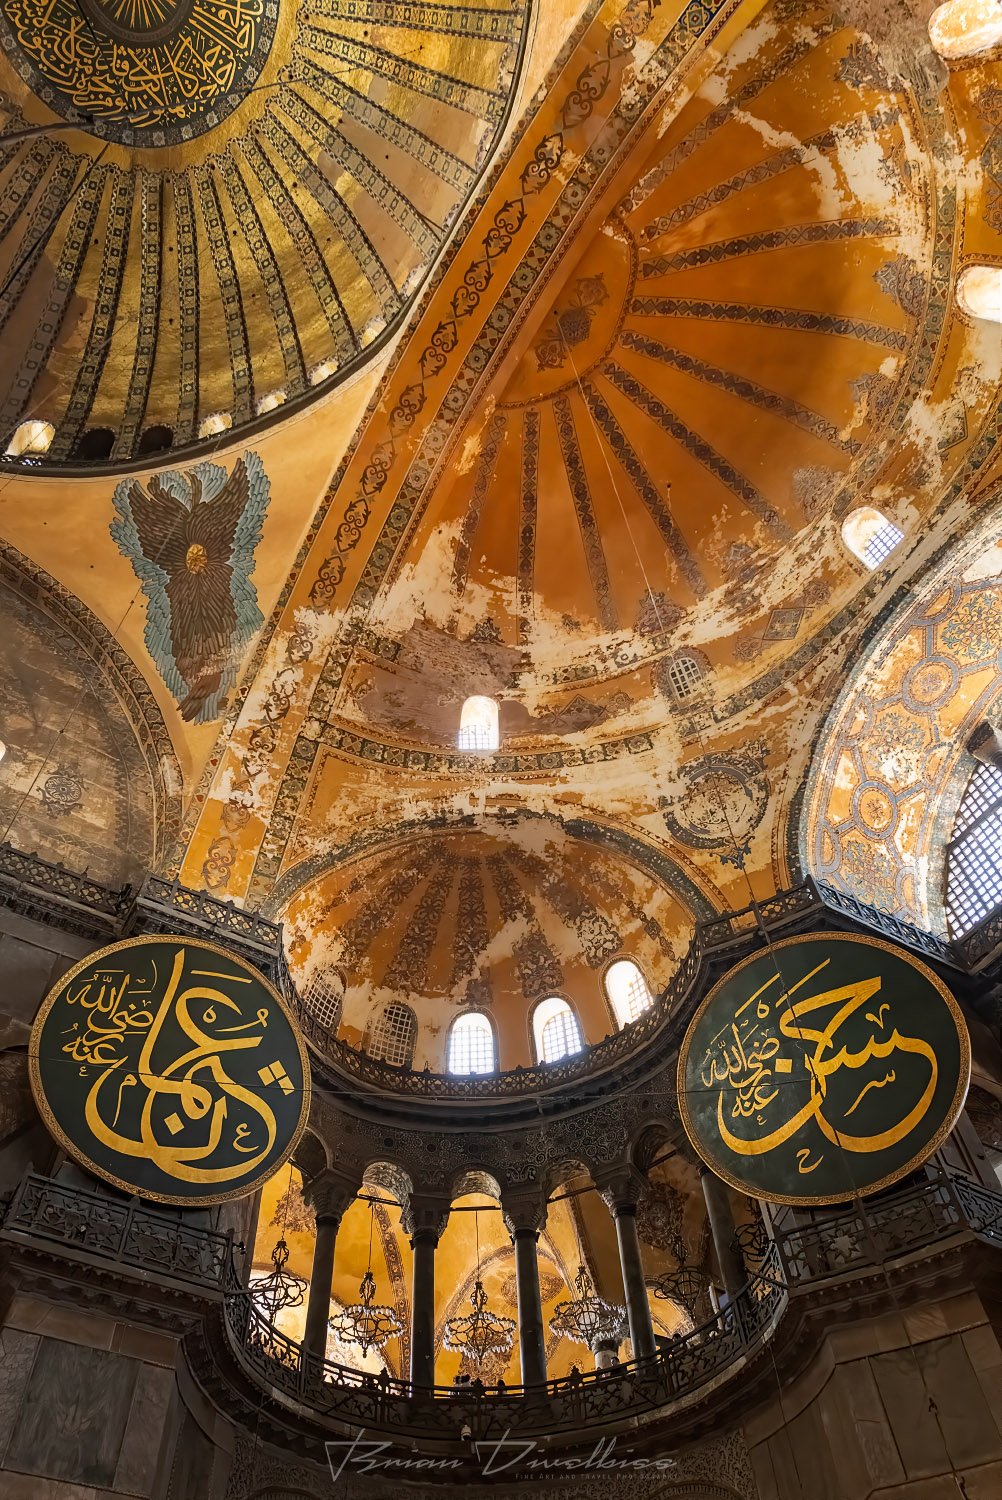 Domes of the Hagia Sophia in Istanbul, Turkey from below.